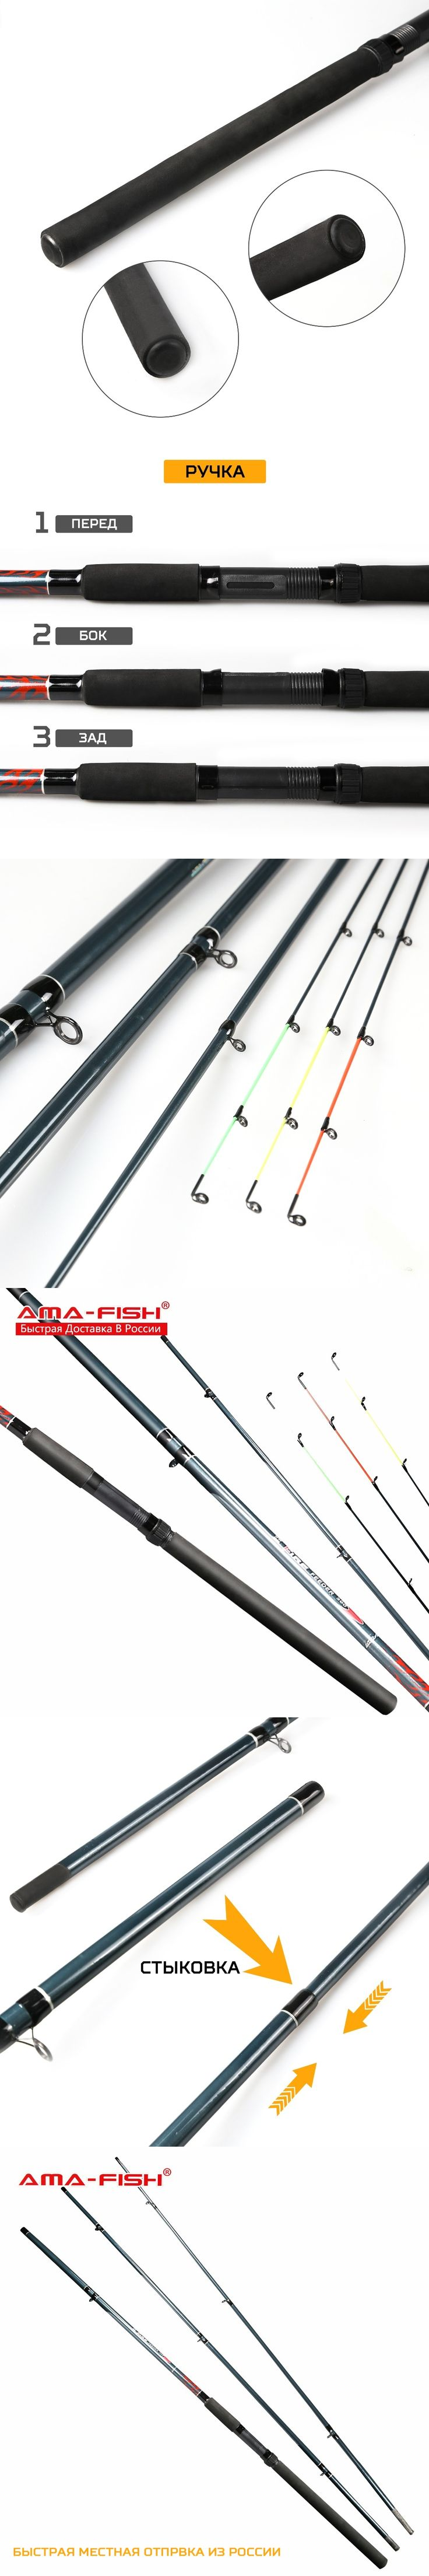 AMA-Fish 100% Original Spinning Rod 3.9m Lure Rod 3+3  Sections Carbon Rods Lure Weight Up To 100g Spinning Fishing Rod